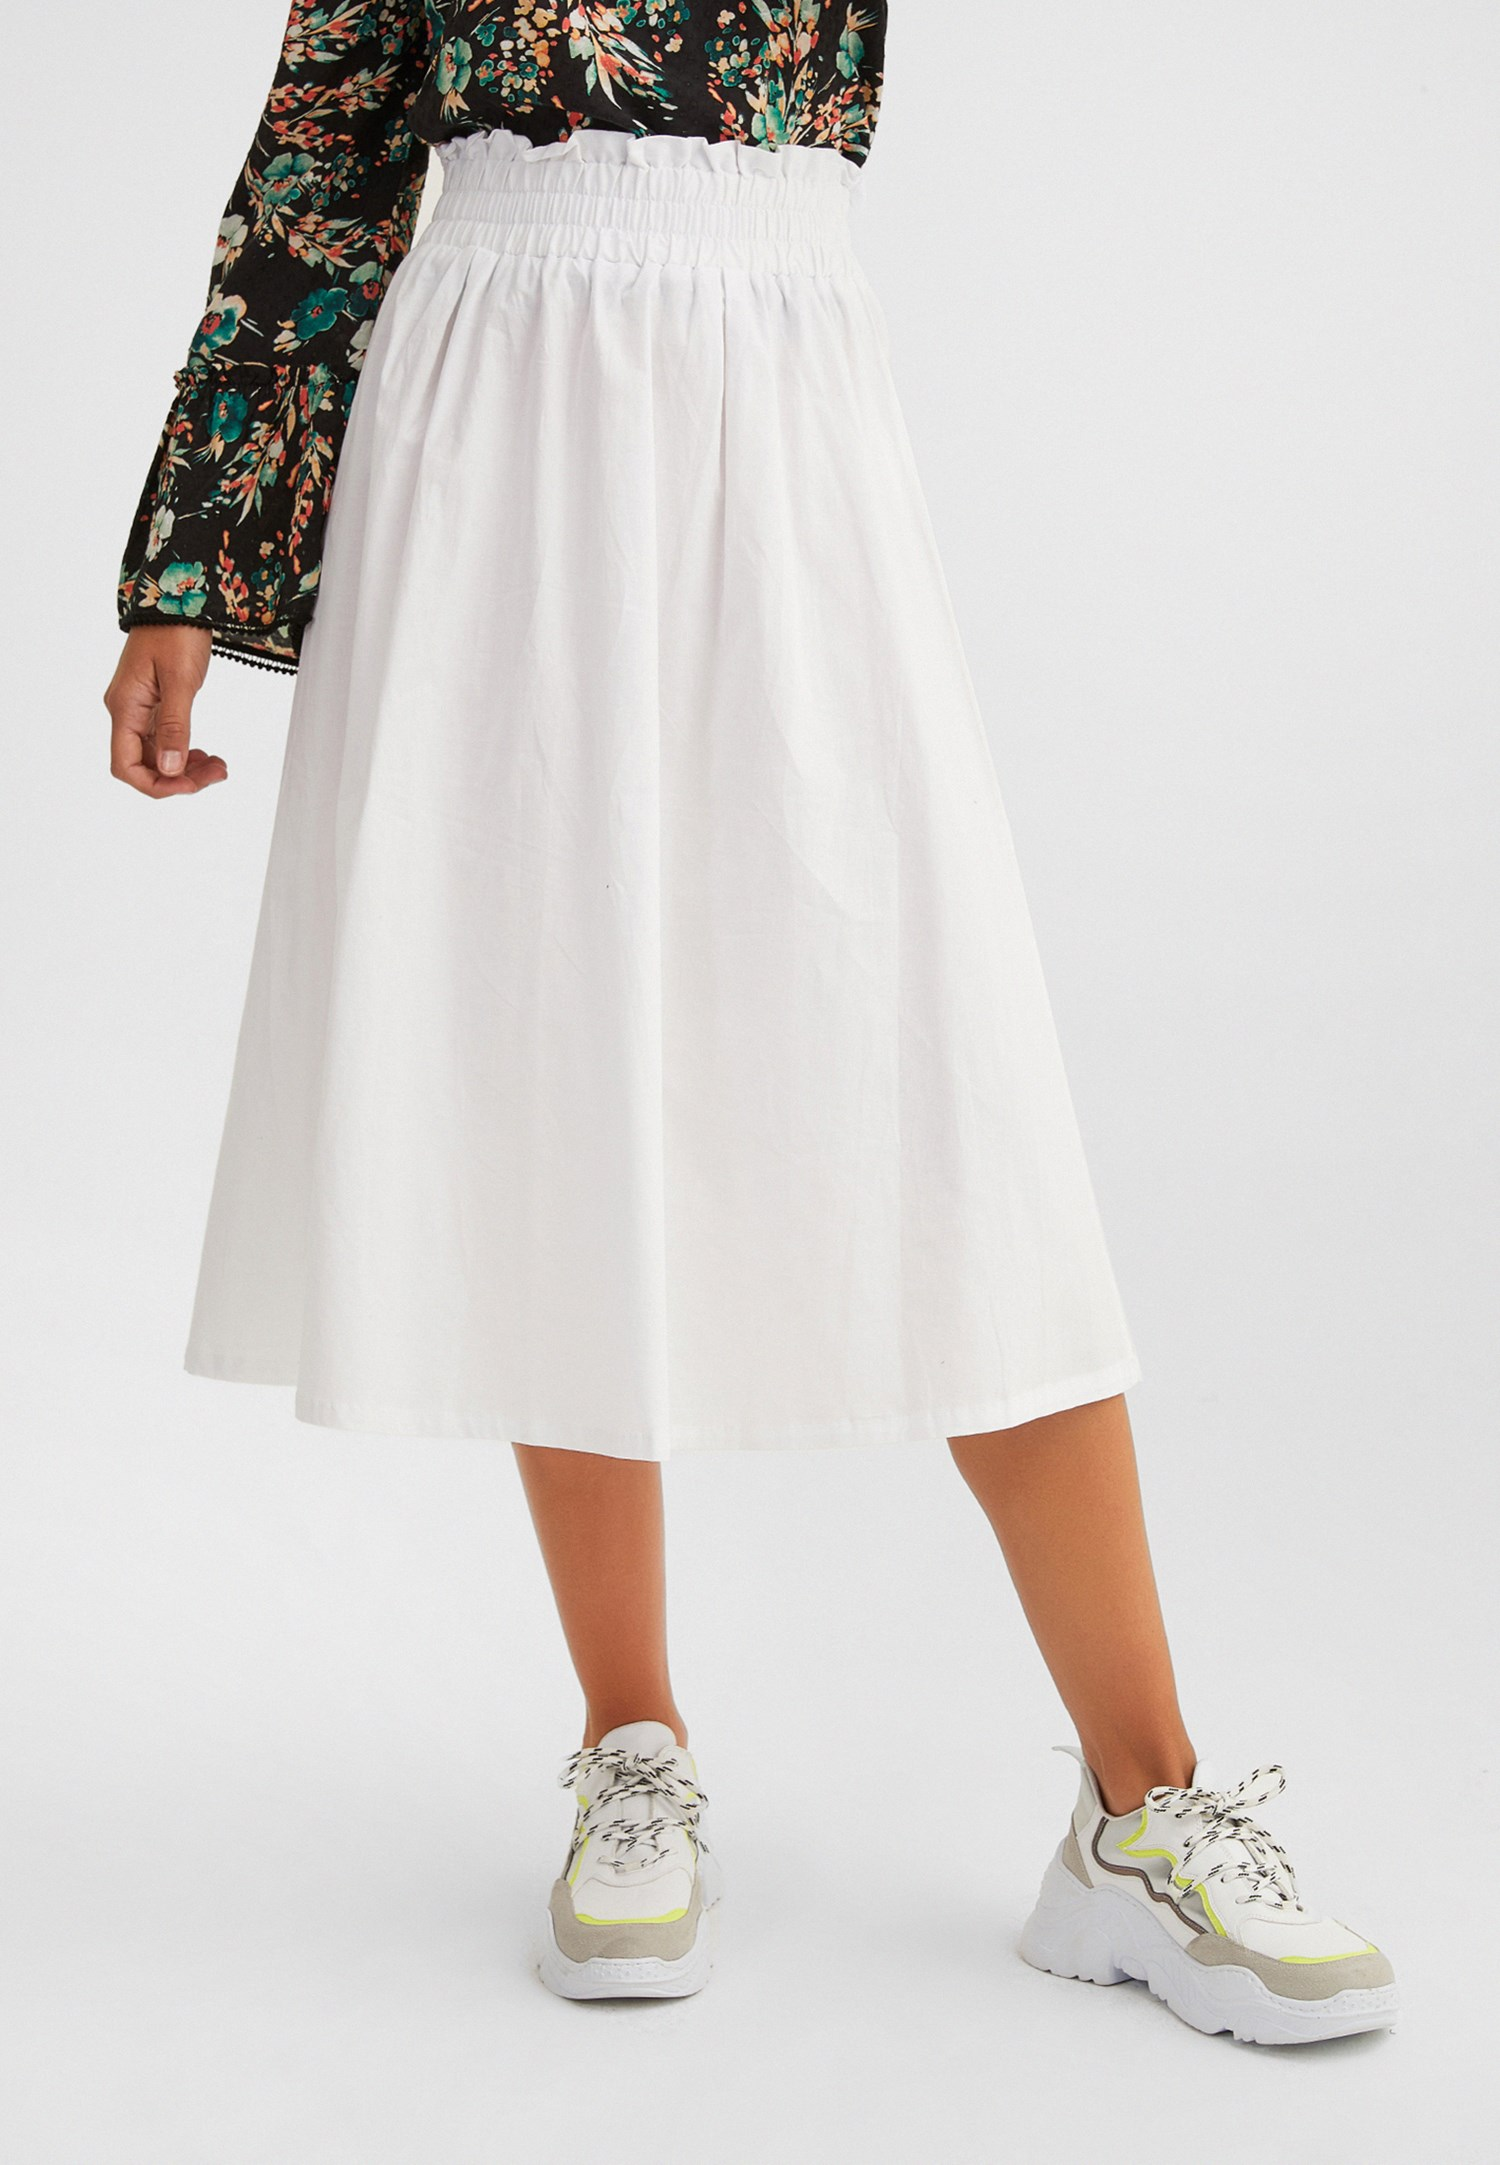 193faf366a White Cotton Skirt with Belt Details Online Shopping | OXXOSHOP